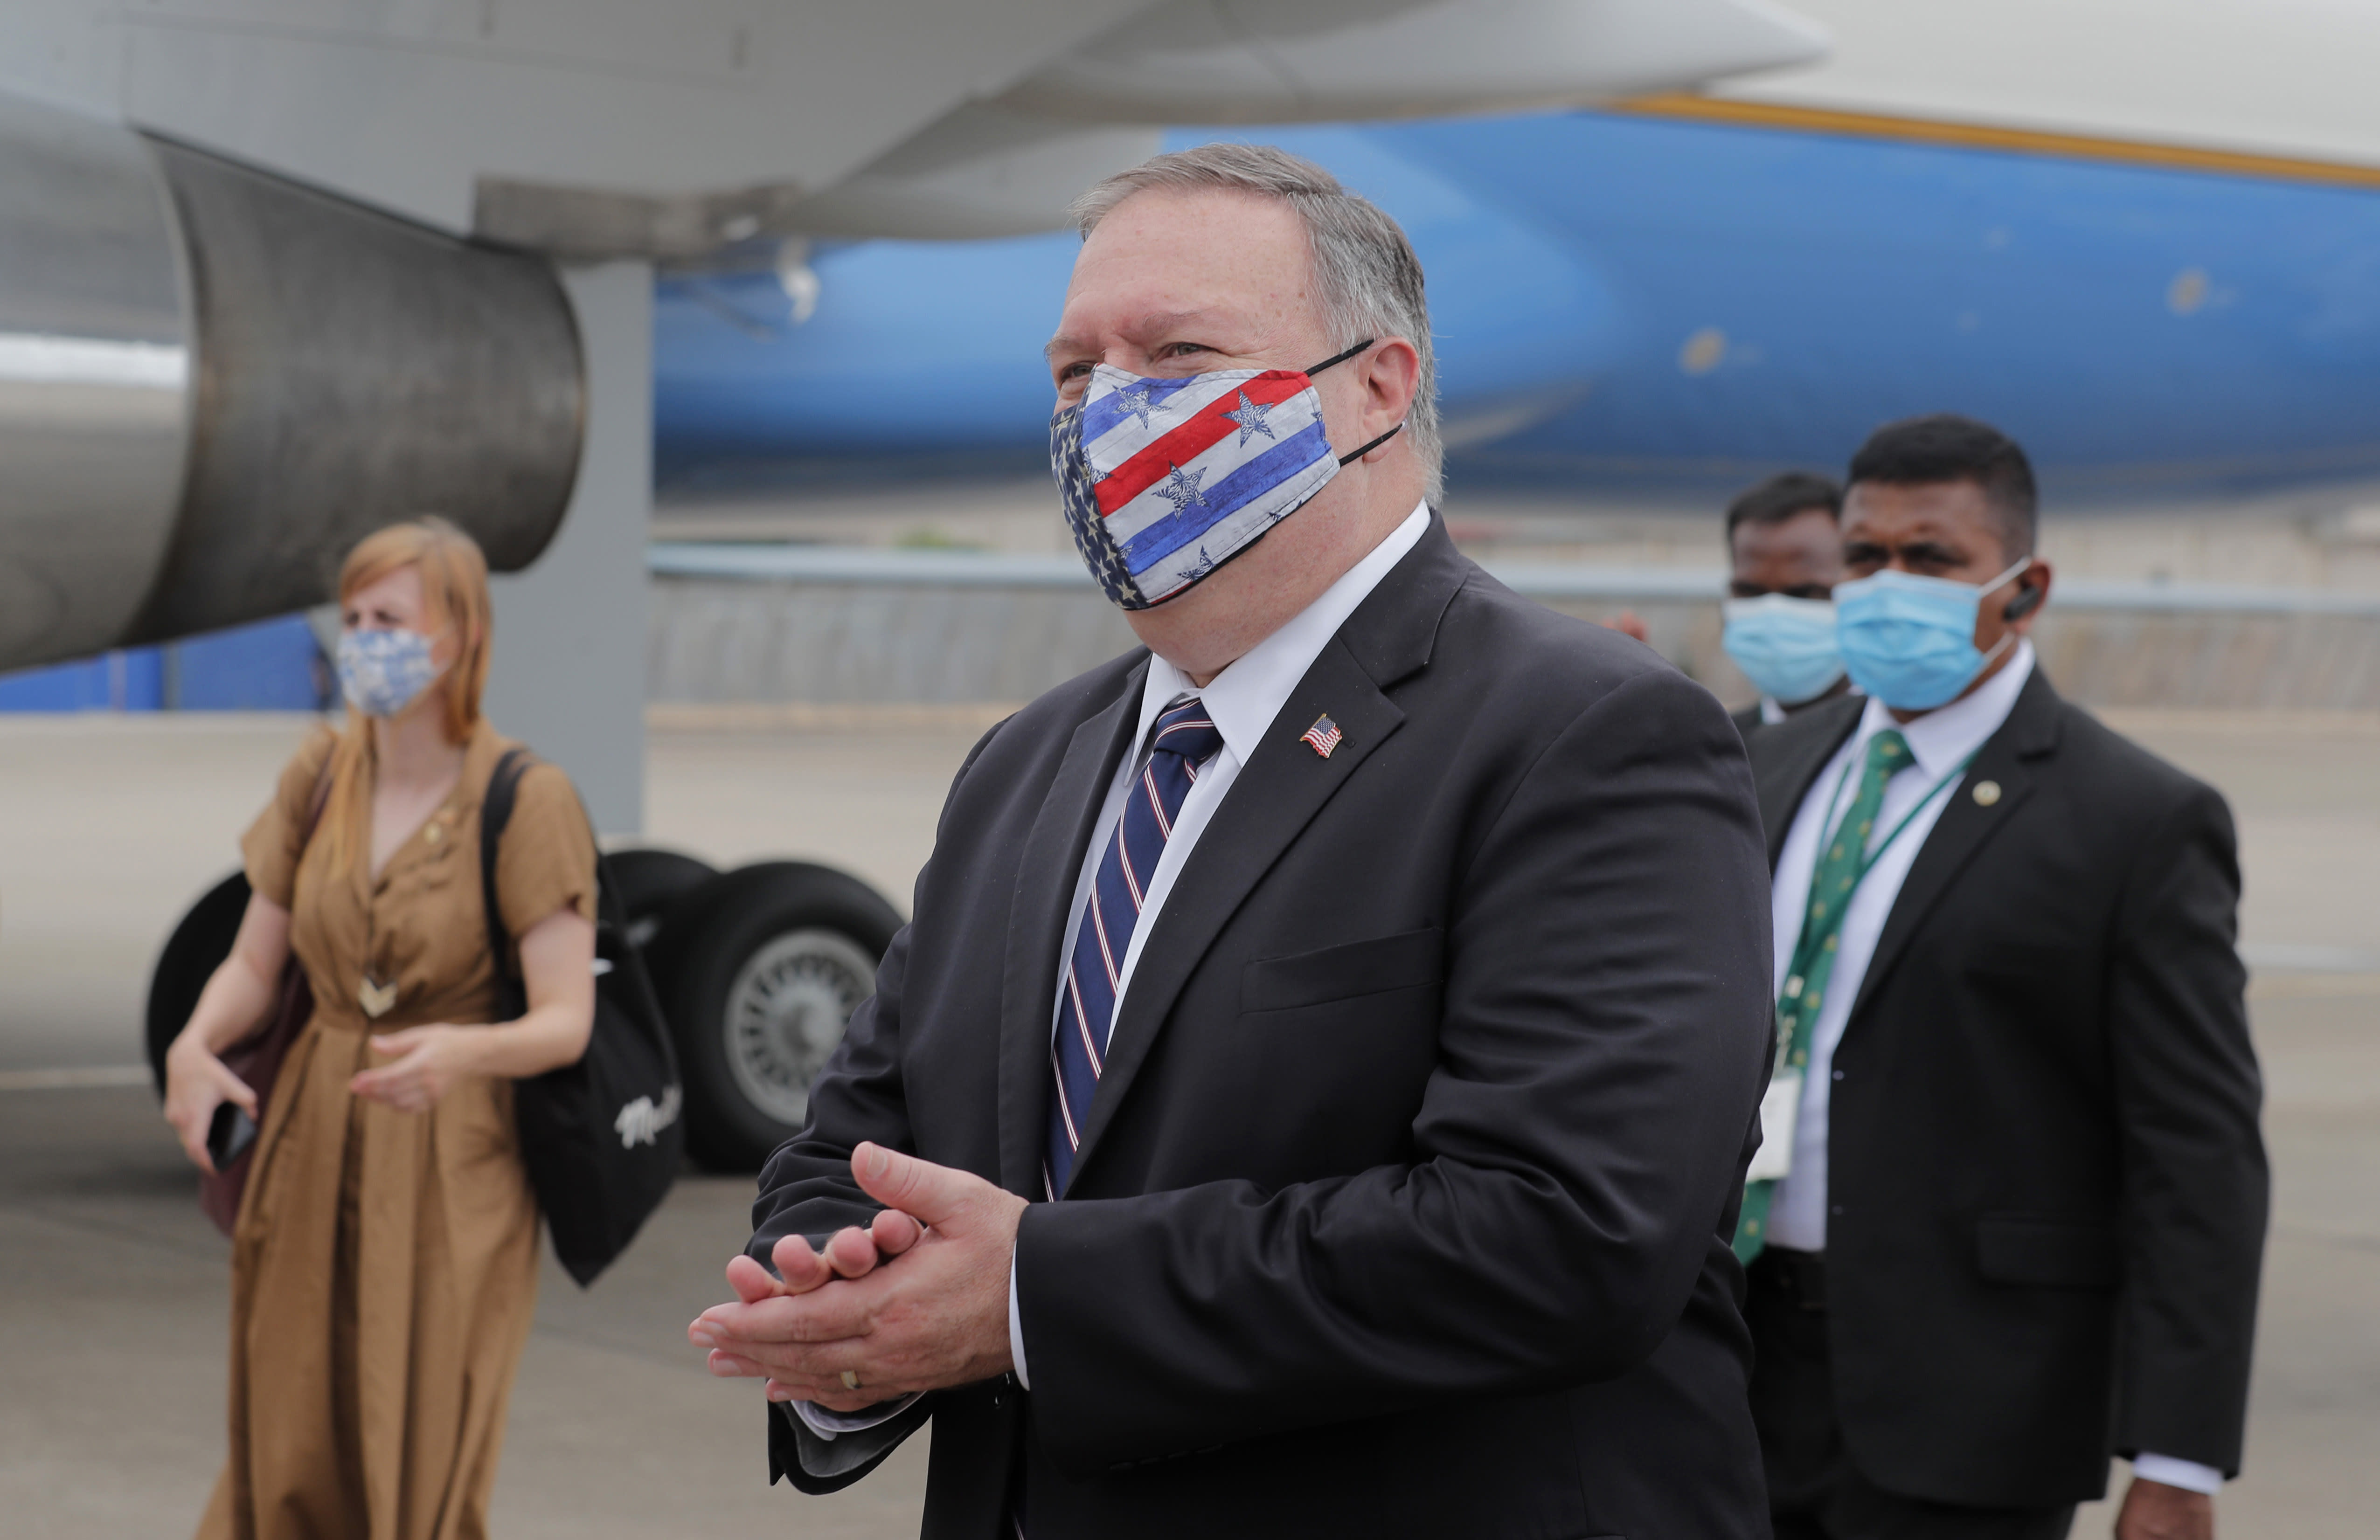 U.S. Secretary of State Mike Pompeo walks to board an aircraft to leave for Maldives, in Colombo, Sri Lanka, Wednesday, Oct. 28, 2020. Pompeo plans to press Sri Lanka to push back against Chinese assertiveness, which U.S. officials complain is highlighted by predatory lending and development projects that benefit China more than the presumed recipients. The Chinese Embassy in Sri Lanka denounced Pompeo's visit to the island even before he arrived there, denouncing a senior U.S. official's warning that the country should be wary of Chinese investment. (AP Photo/Eranga Jayawardena, Pool)